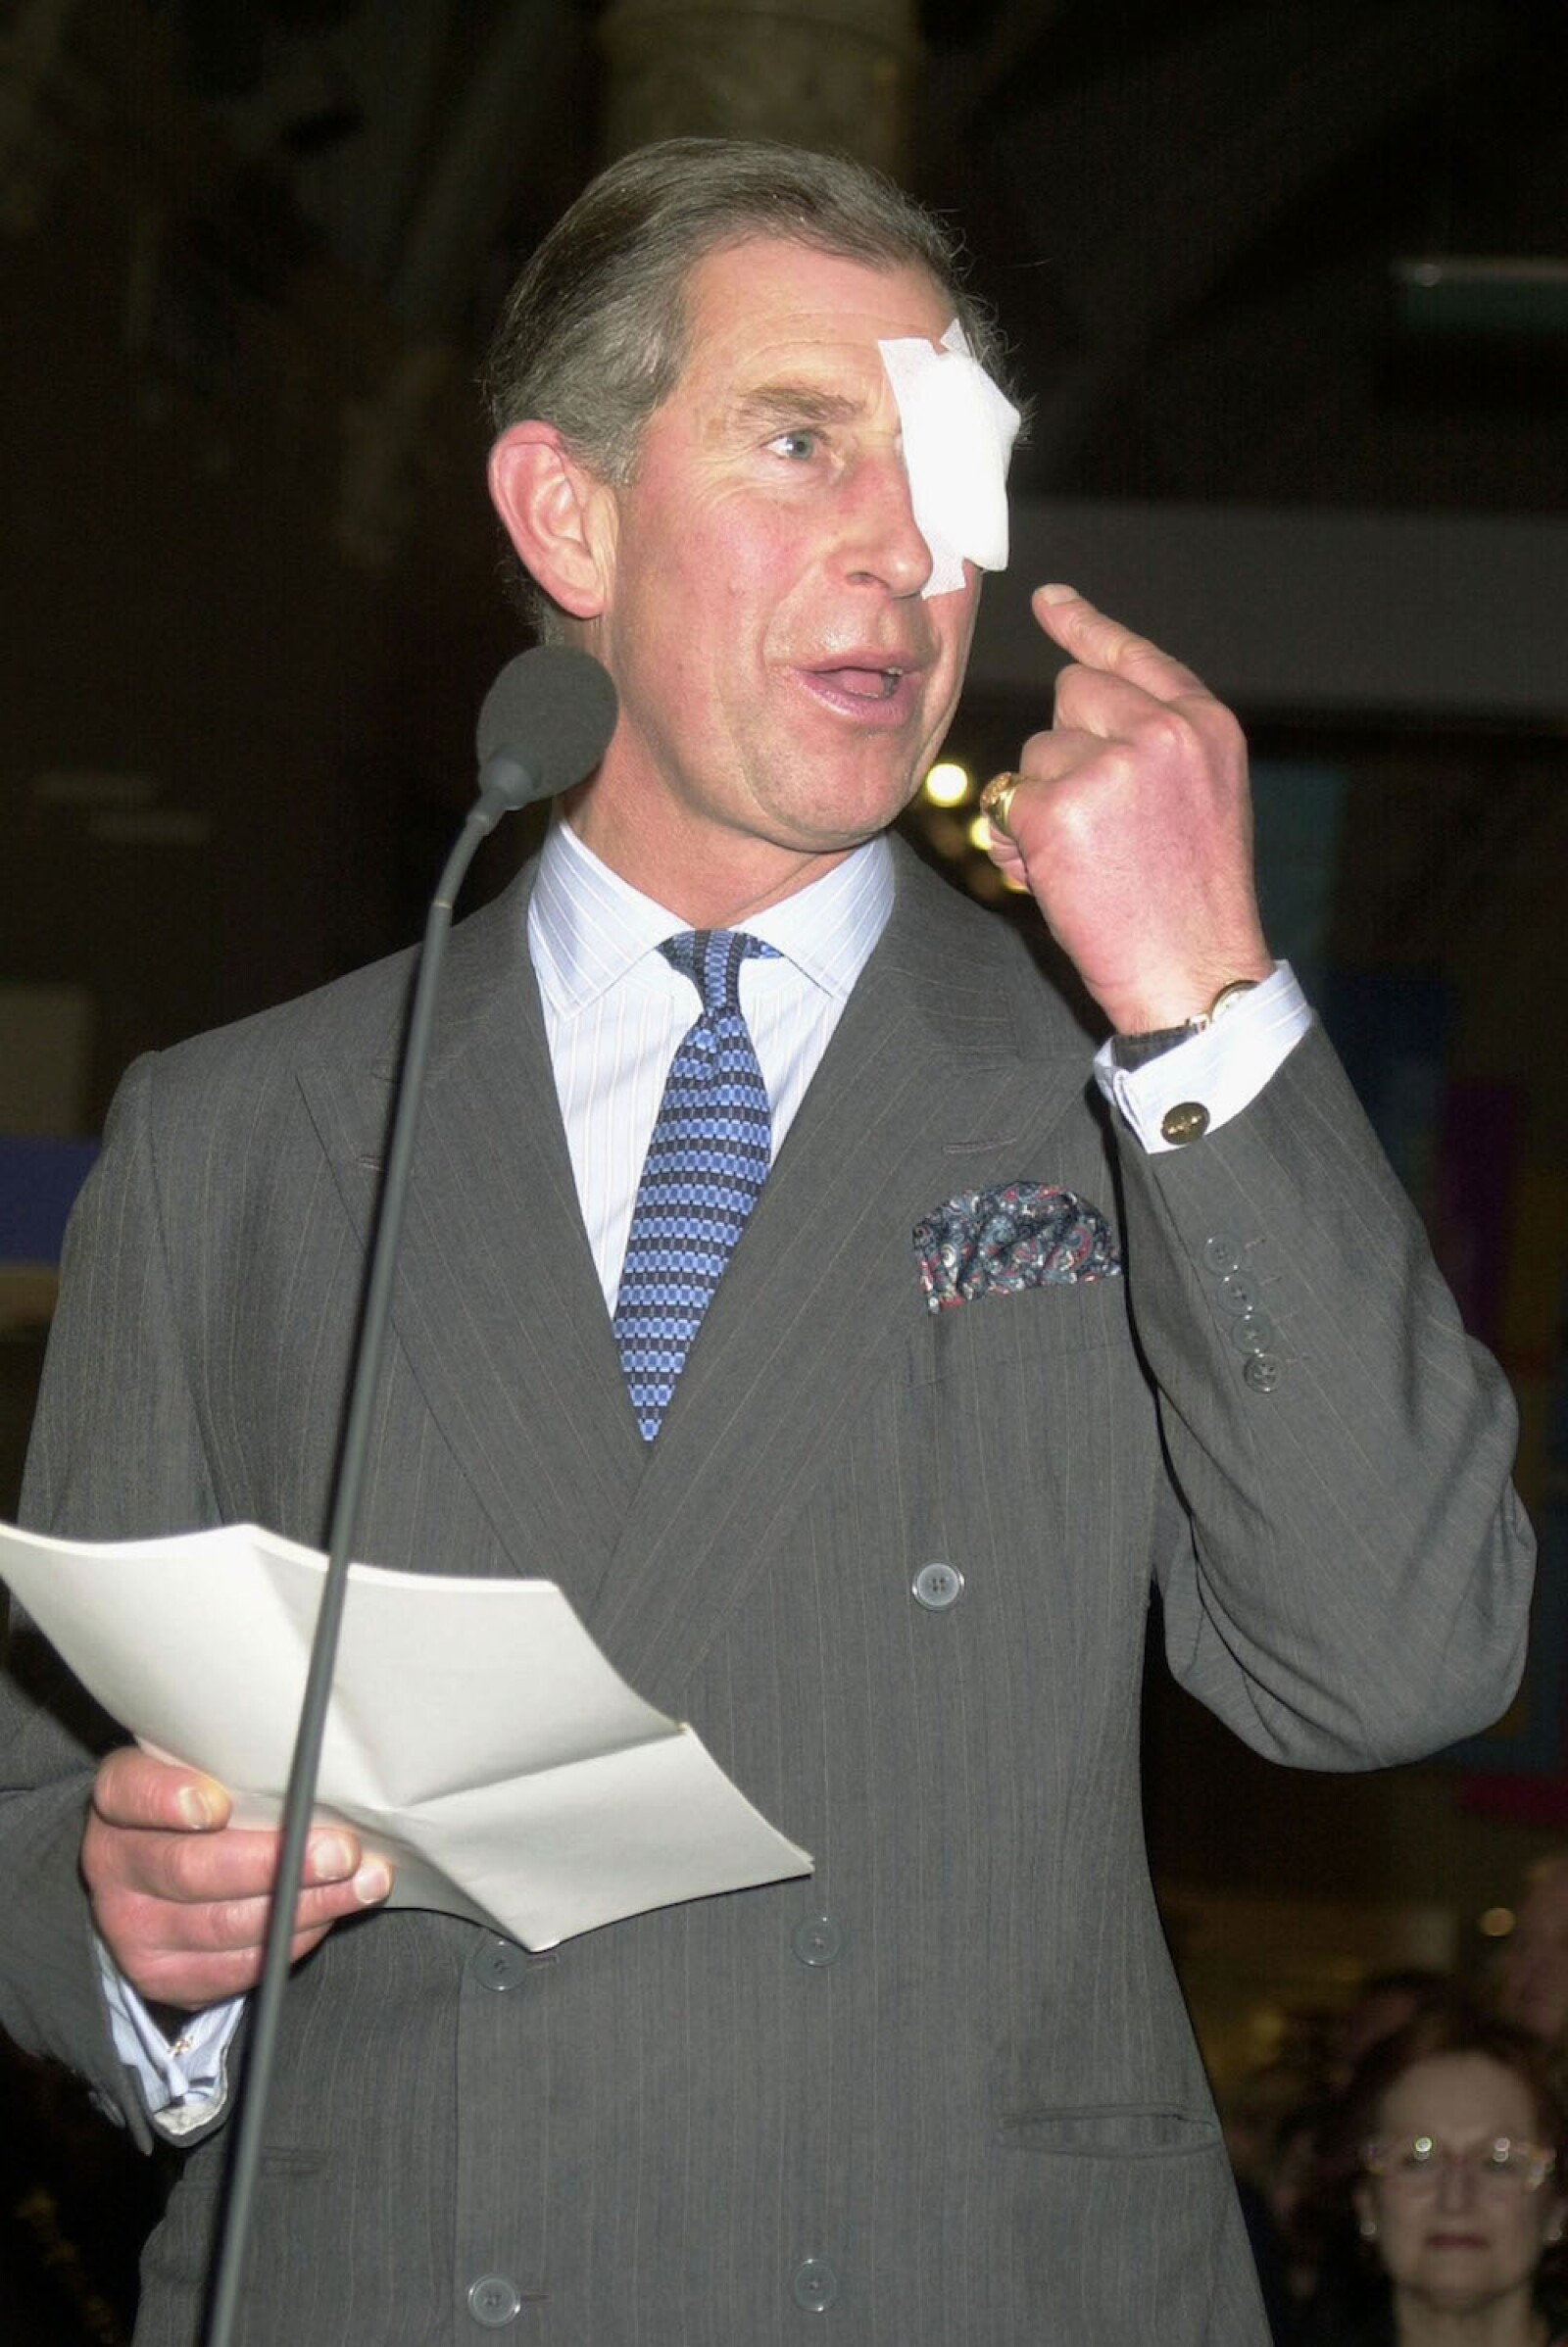 PRINCE CHARLES OPENS NEW GALLERIES